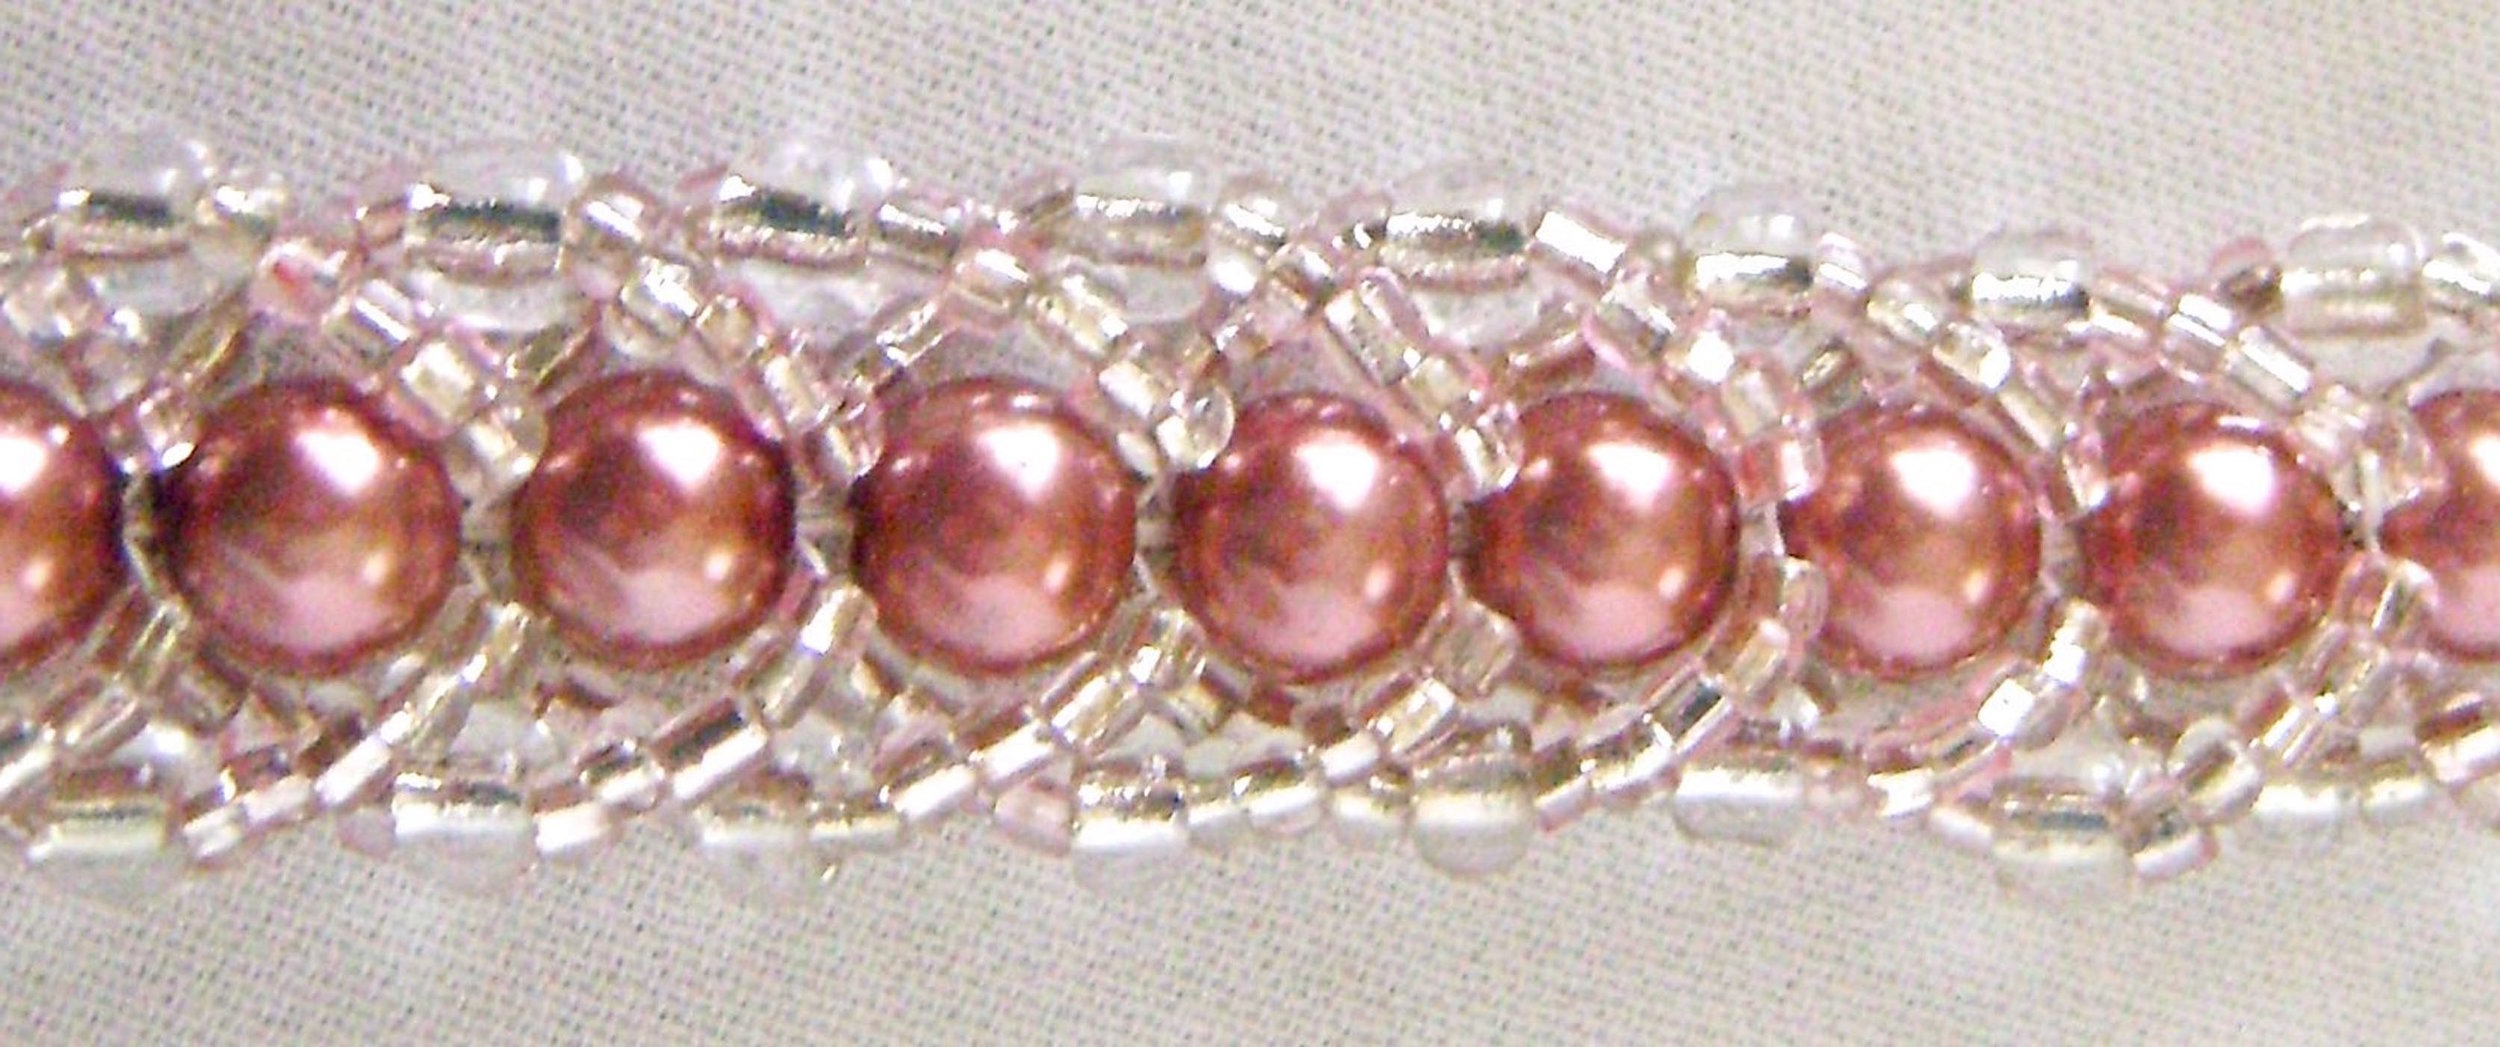 Pearls in 6mm dusty rose, 4mm clear crystals, clear and pink seed beads